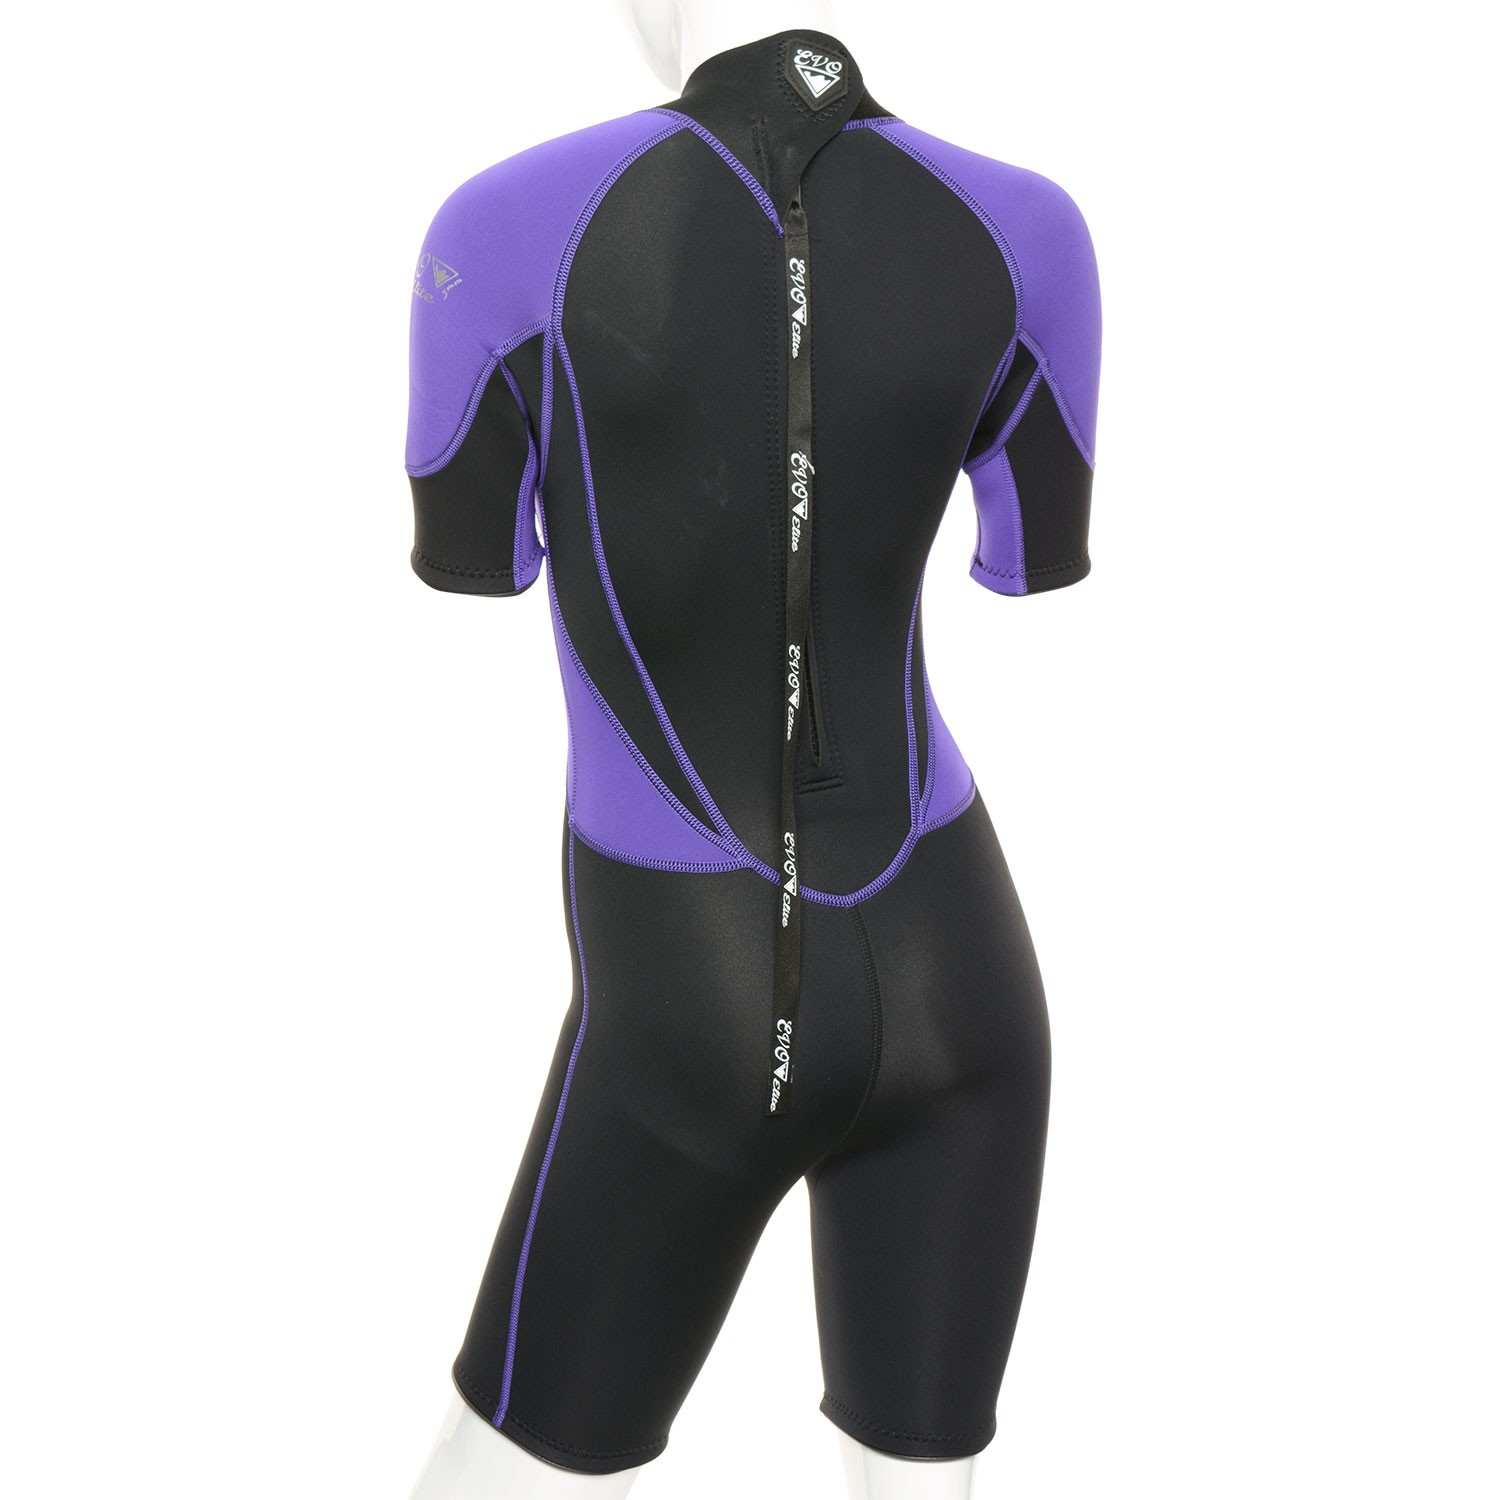 EVO Womens 3mm Elite Shorty Wetsuit 3